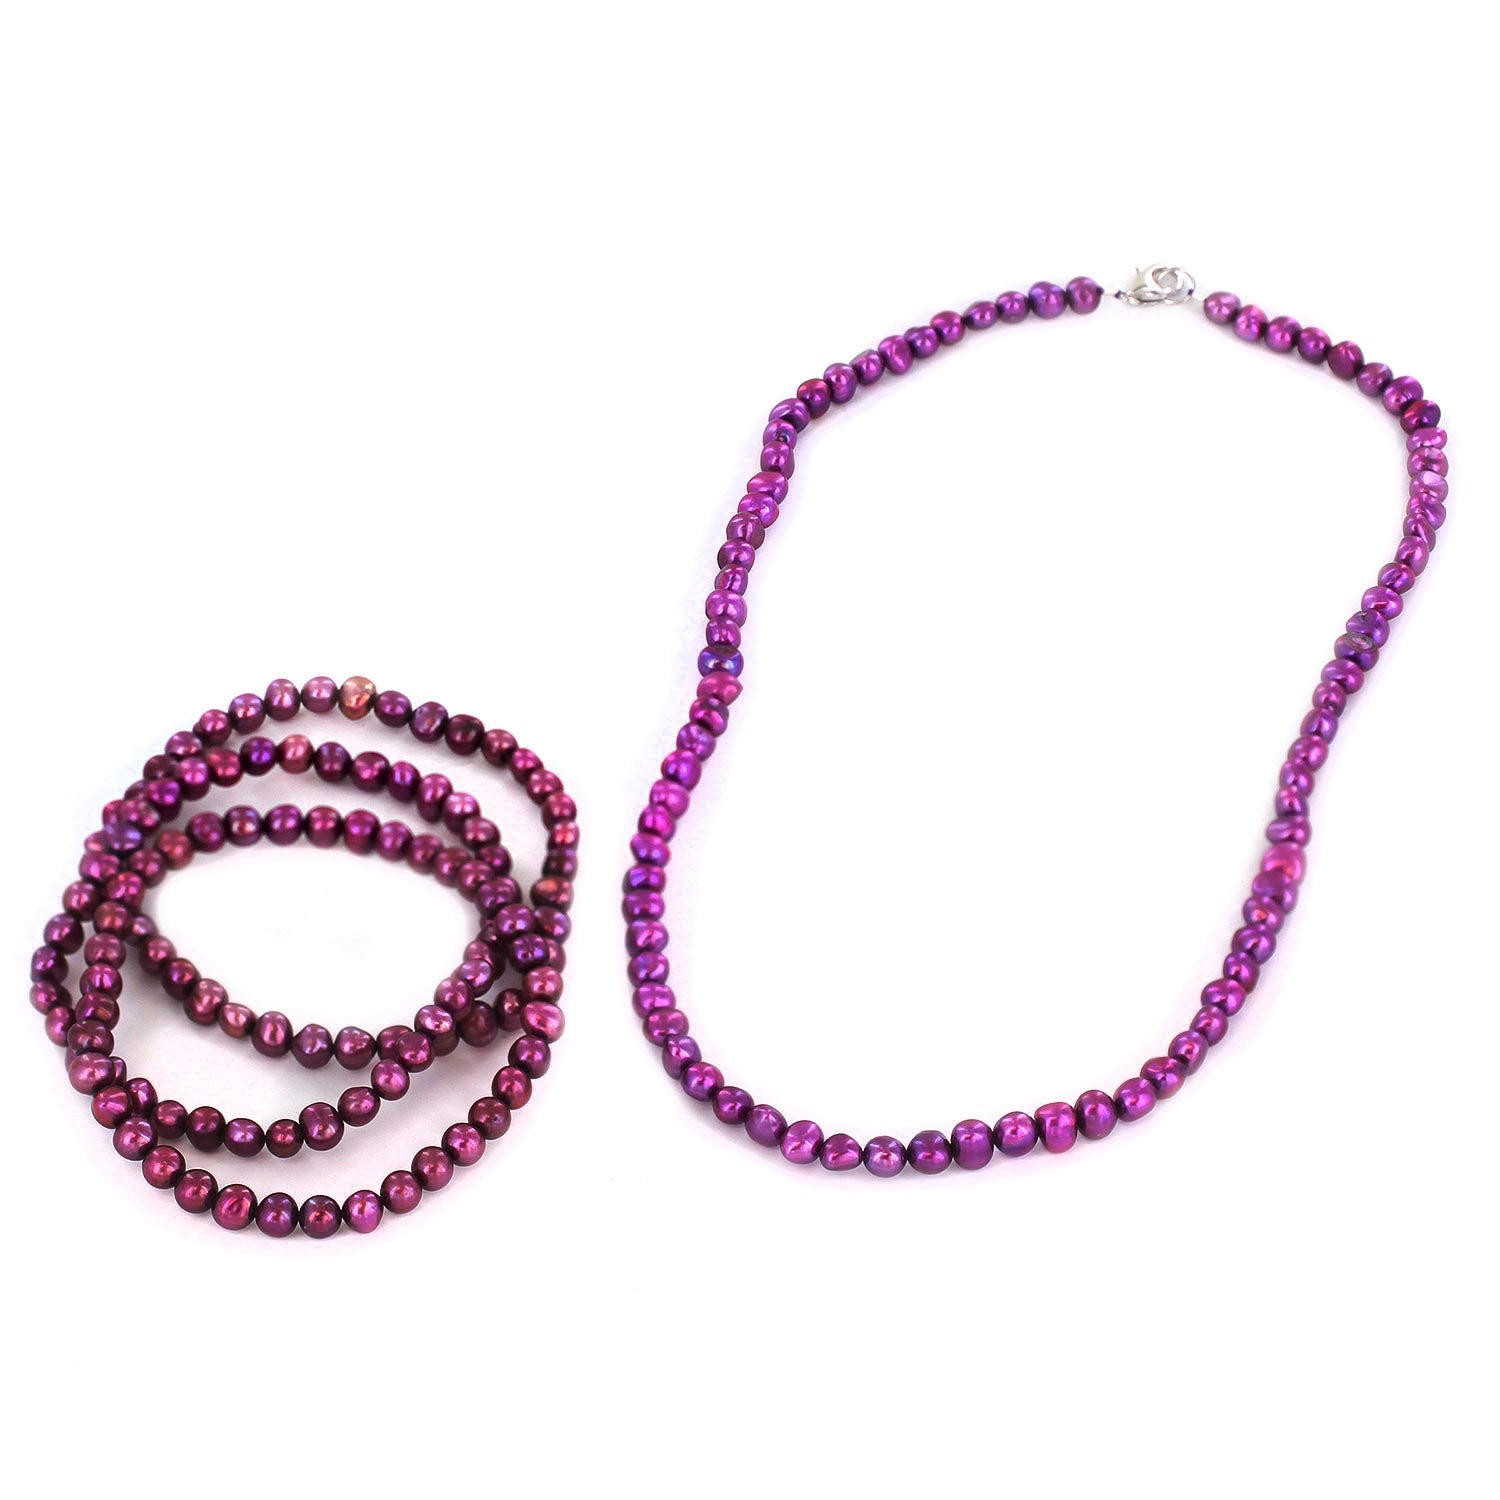 Simulated Pearl Beaded Necklace and 3 Piece Stretch Bracelet Set - Thumbnail 3